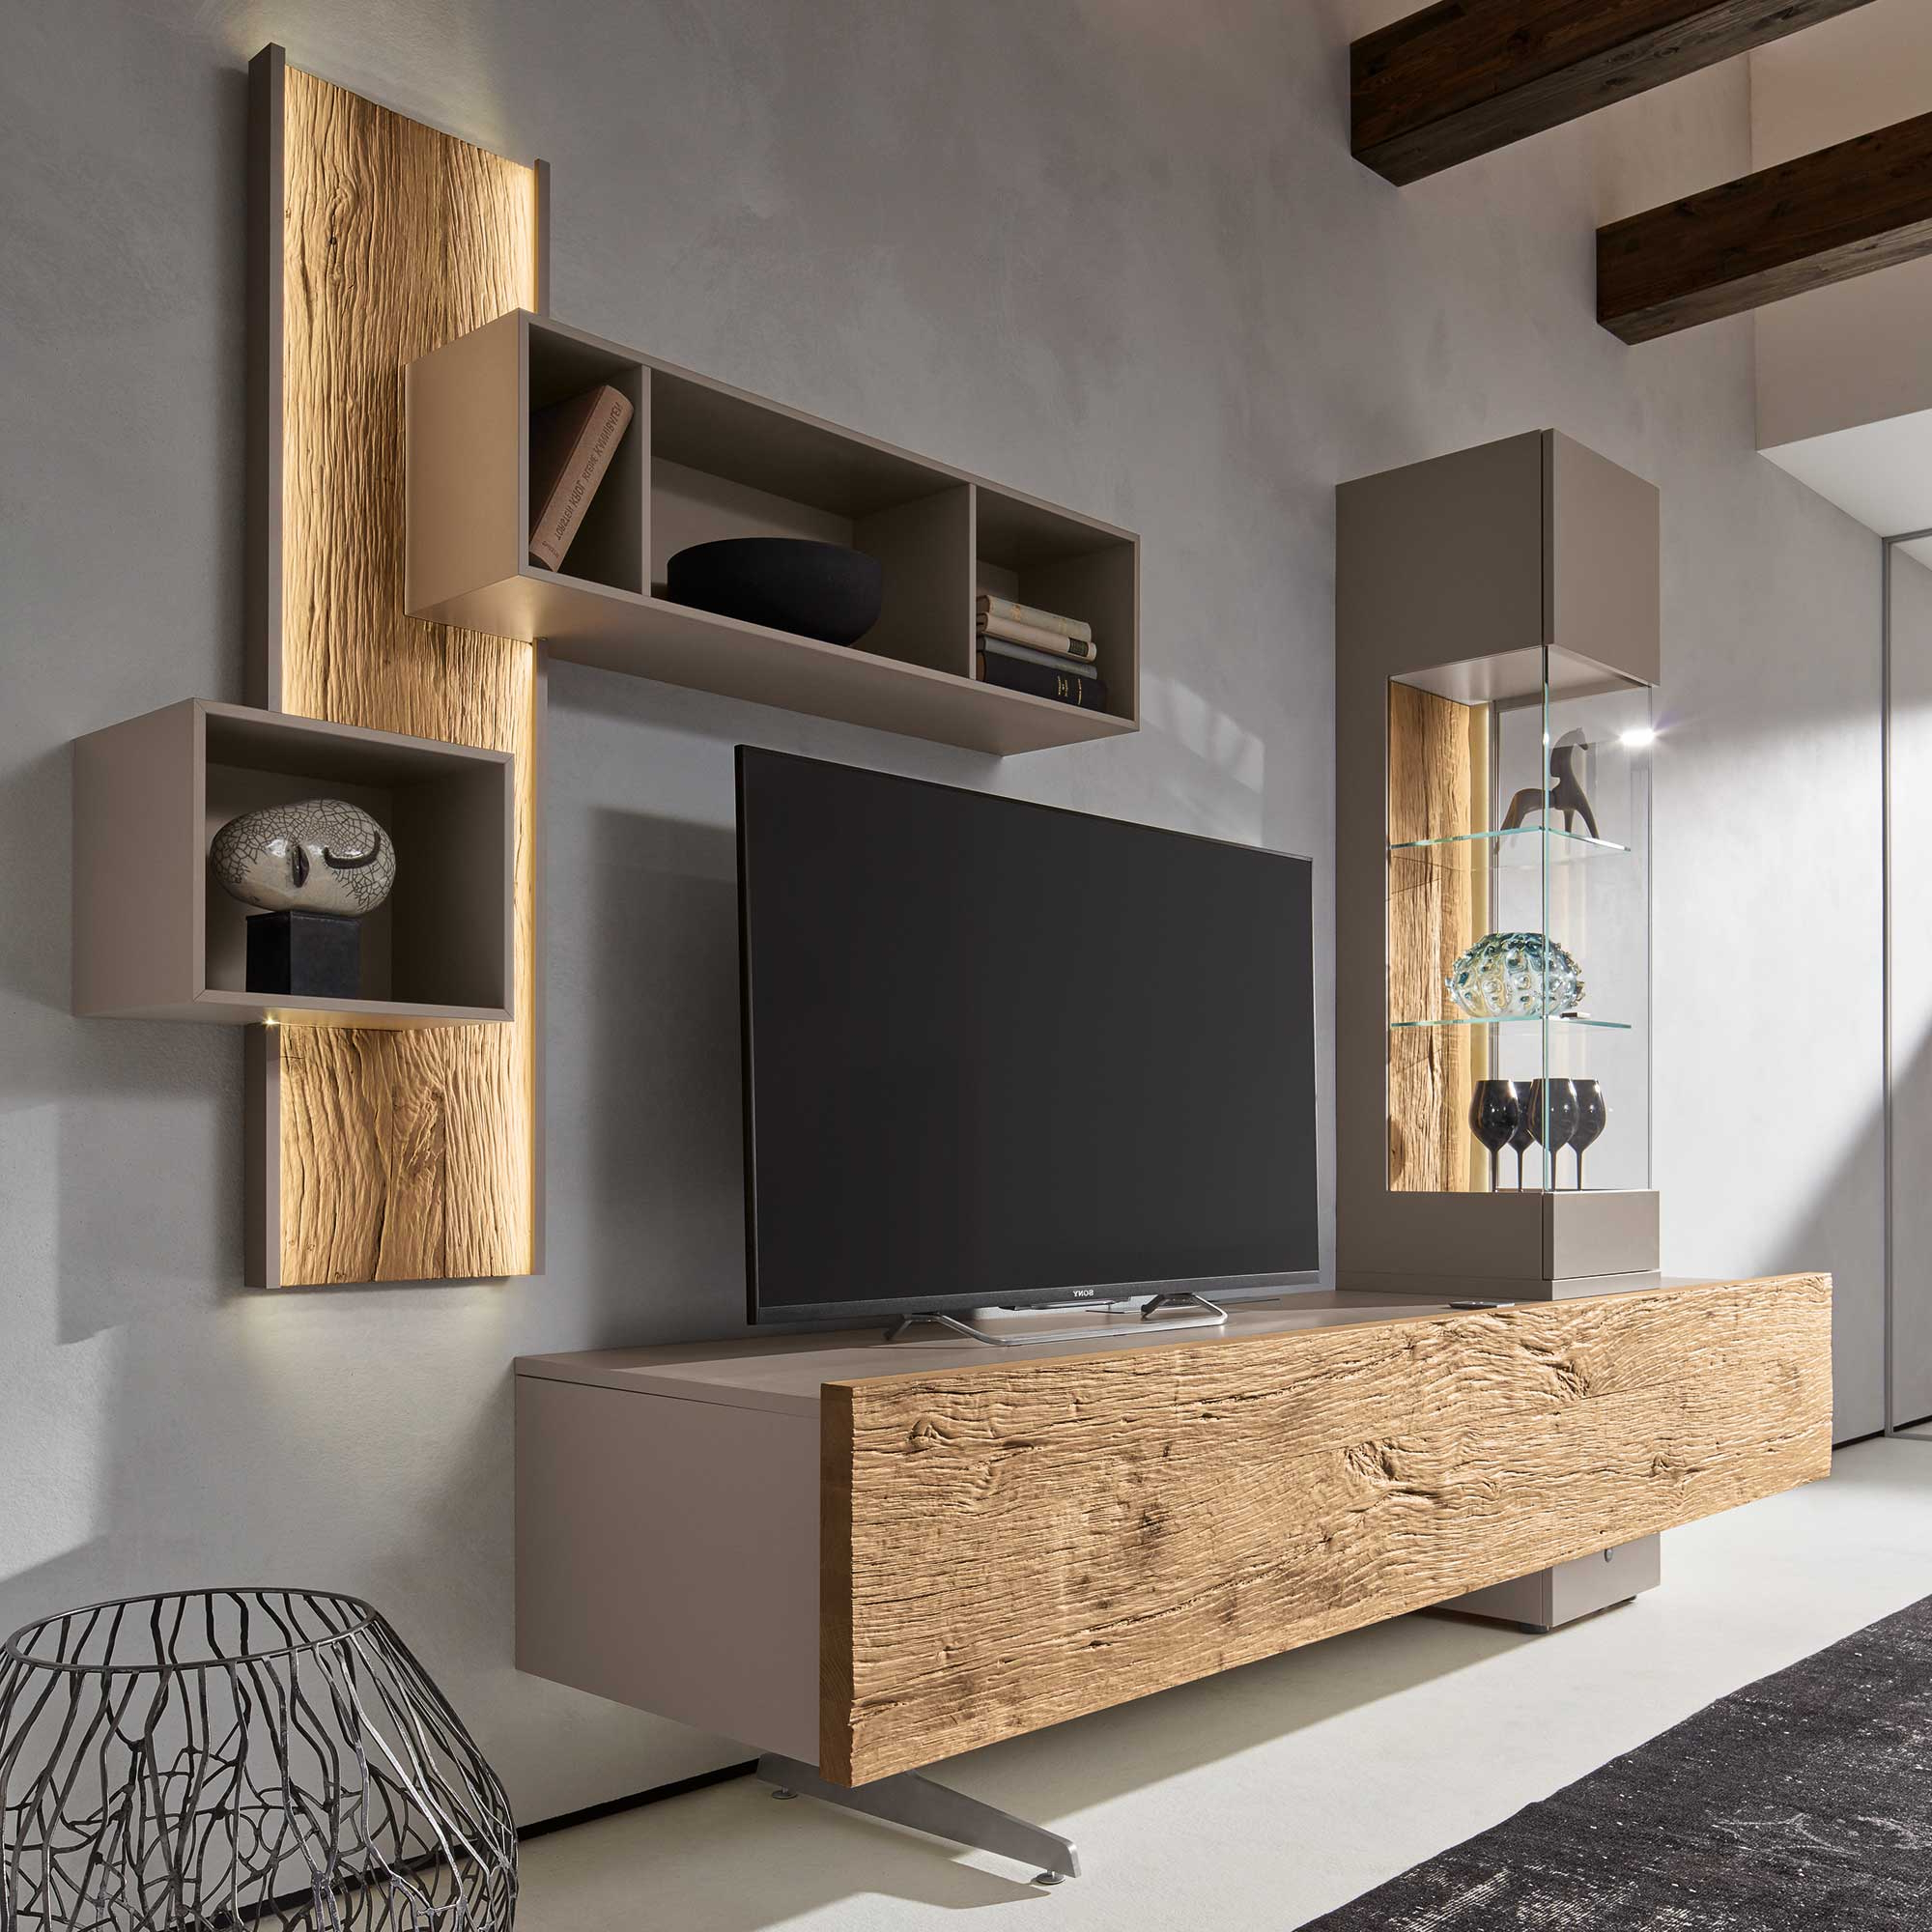 Fascinating Large Wooden Tv Cabinets Lift Extra Freedom For Mango For Recent Funky Tv Cabinets (View 5 of 20)